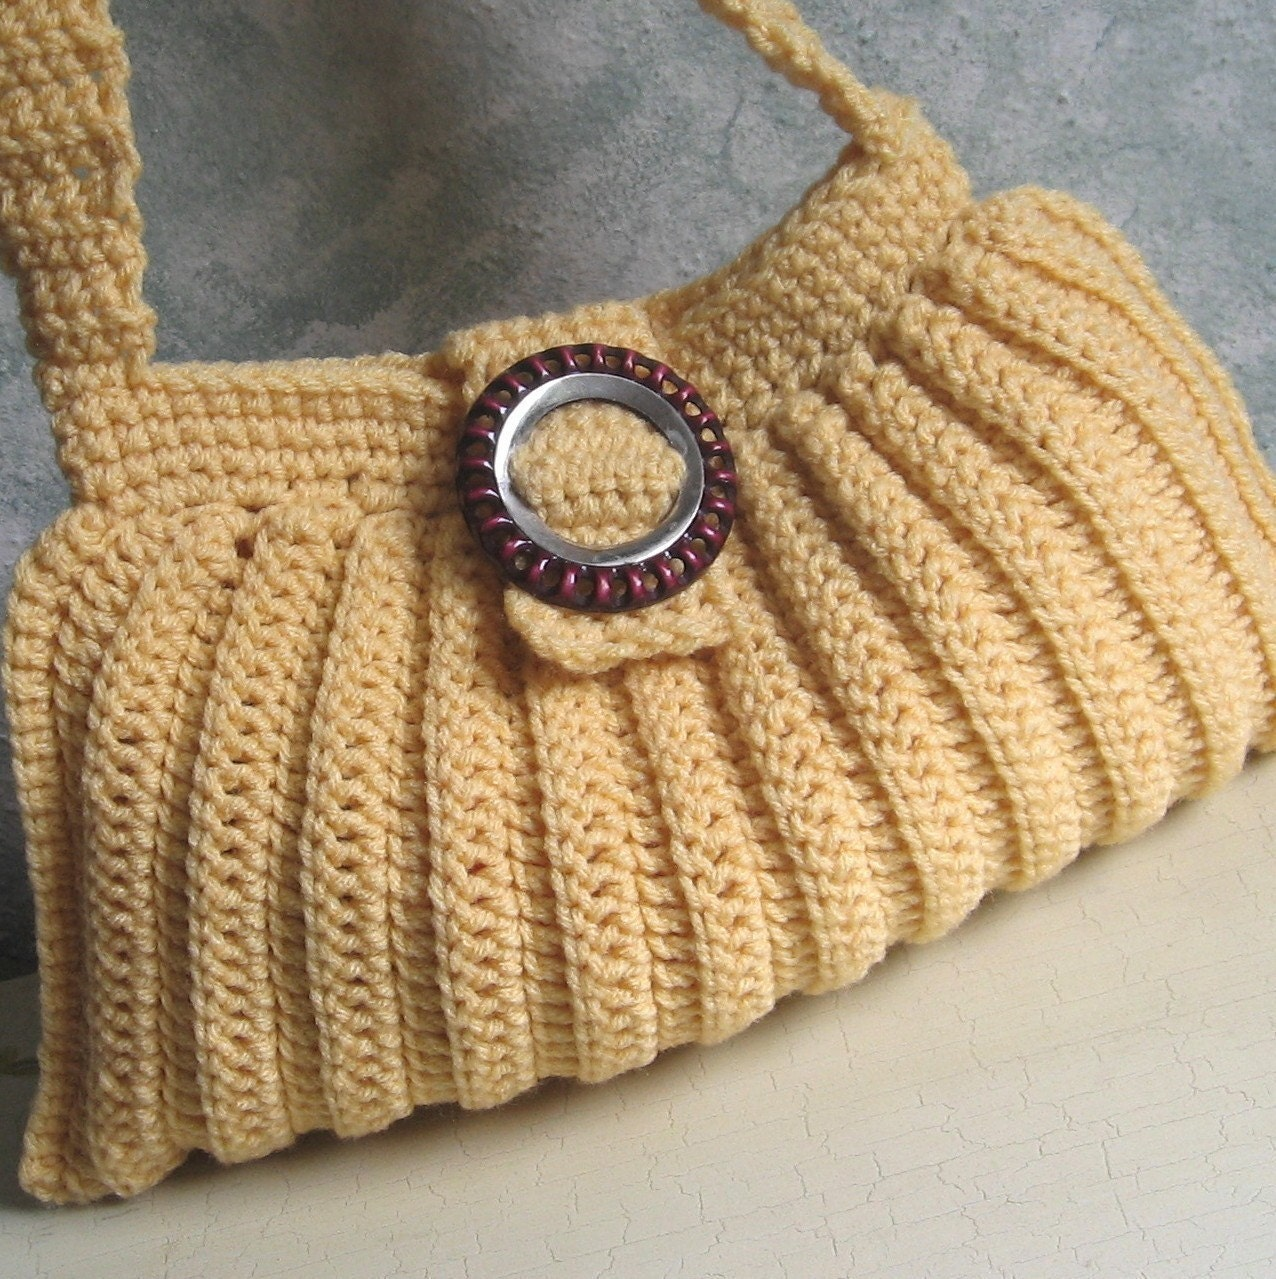 Crochet Satchel Bag Pattern : Crochet Pattern Pleated Shoulder Bag Easy To Make by kalliedesigns